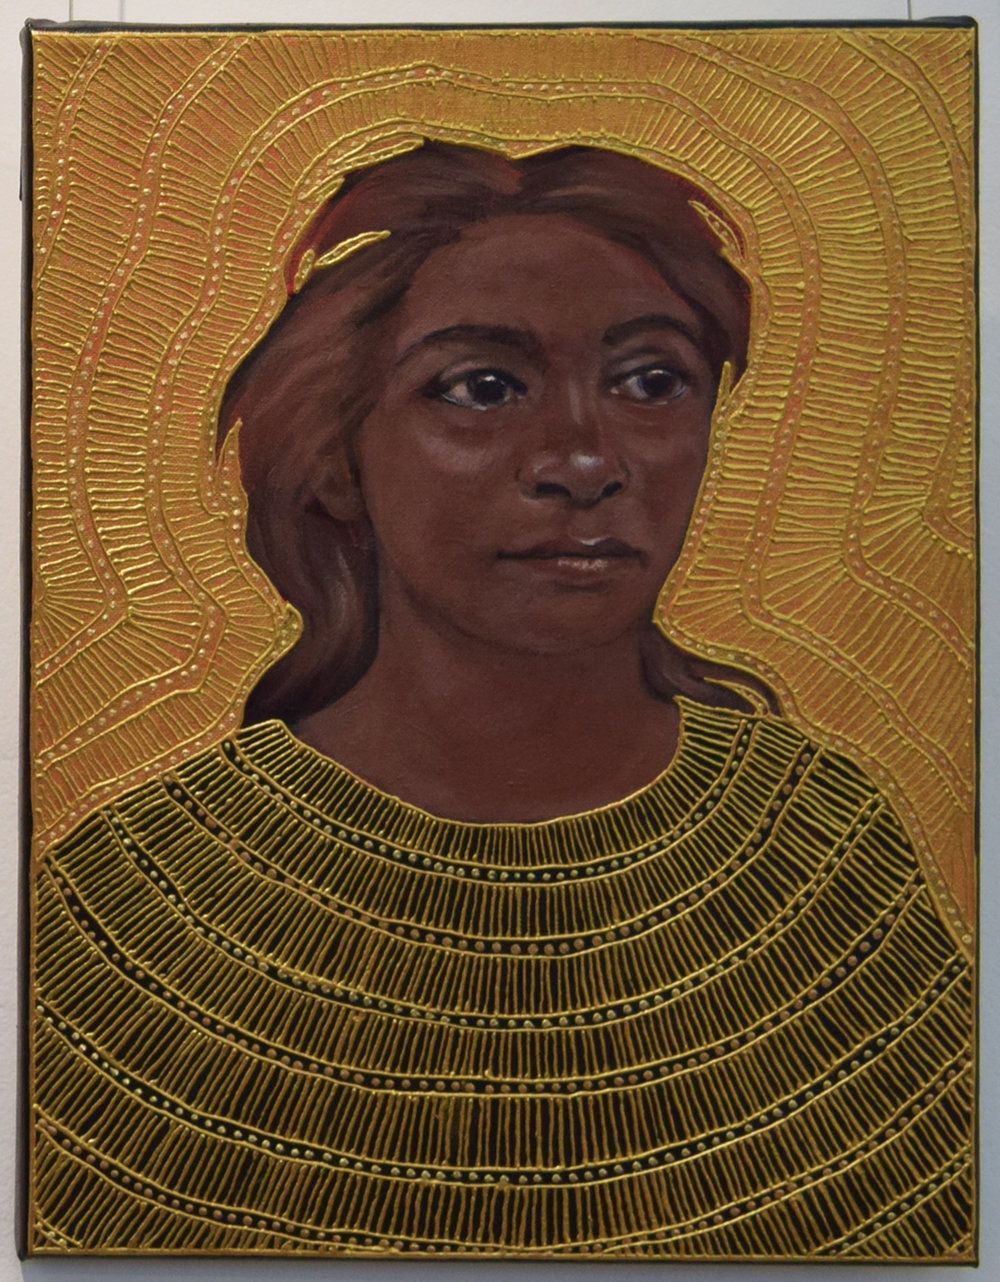 22. Julie Dowling, Murni (Woman), 2018, acrylic, mica gold on canvas, 30 x 40 cm, $2,000